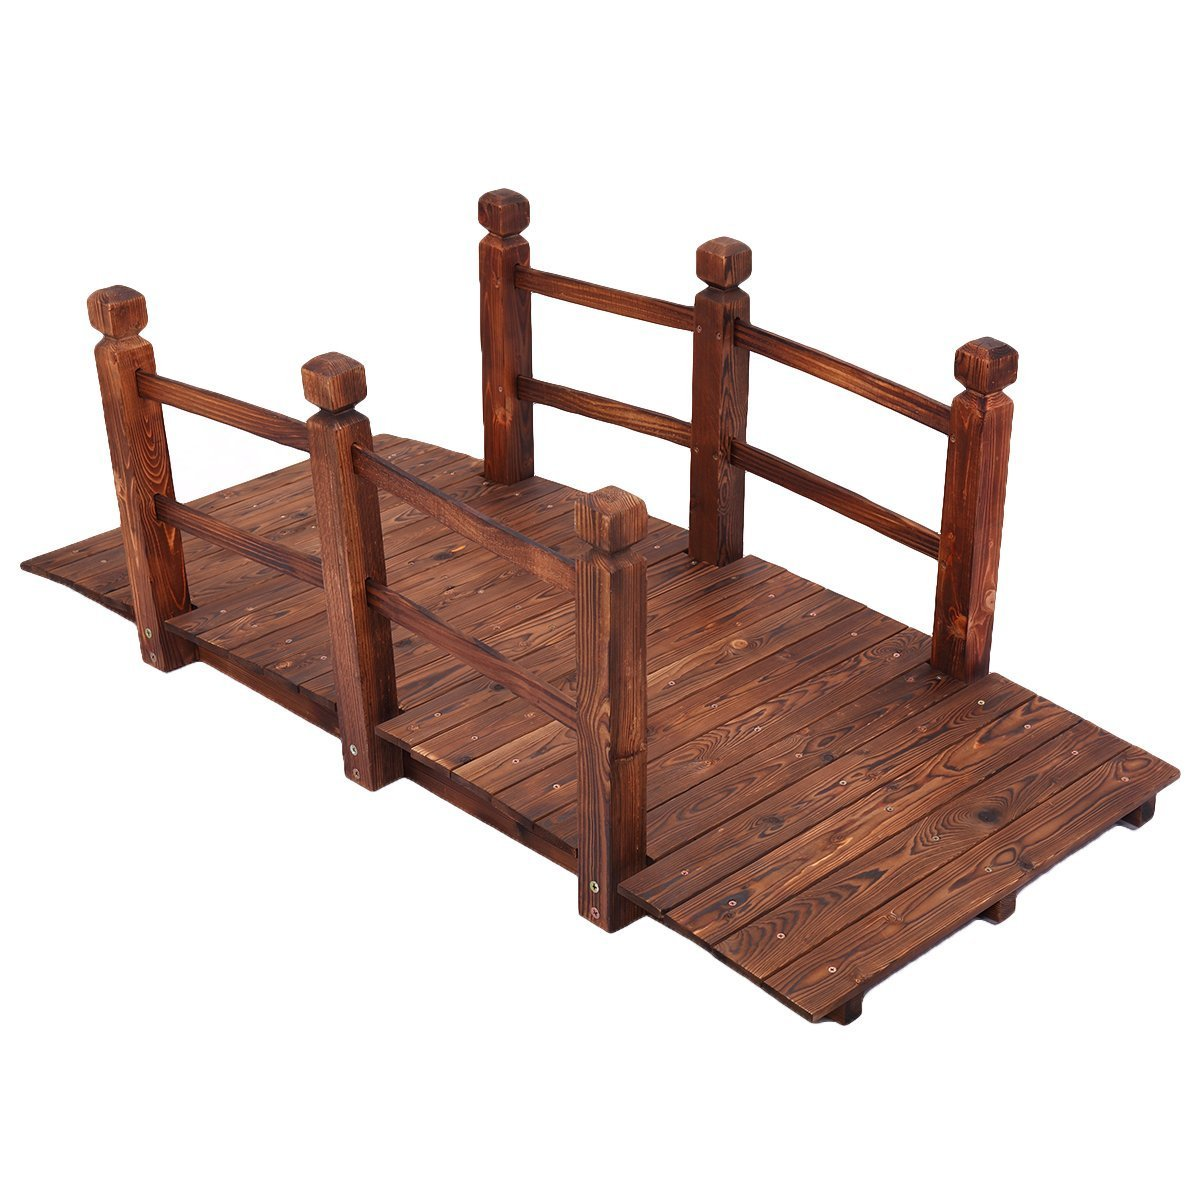 JAXPETY 5'' Wooden Bridge Stained Finish Decorative Solid Wood Garden Pond Arch Walkway w/Railings by JAXPETY (Image #1)